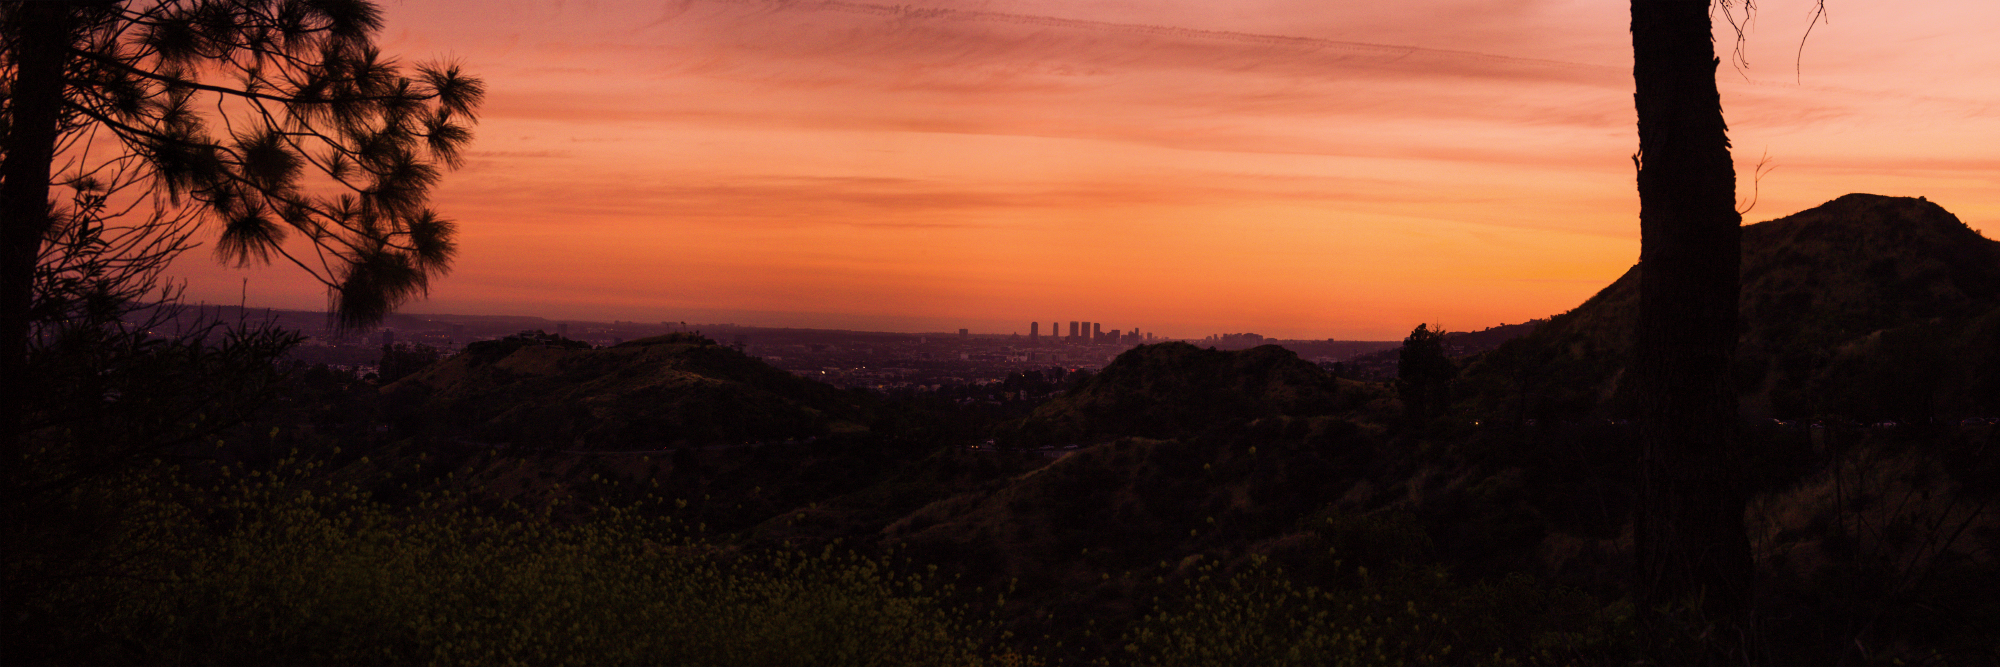 Beautiful orange and yellow sunset with the Los Angeles city skyline in the distance. The silhouettes of mountains and trees are in the foreground.